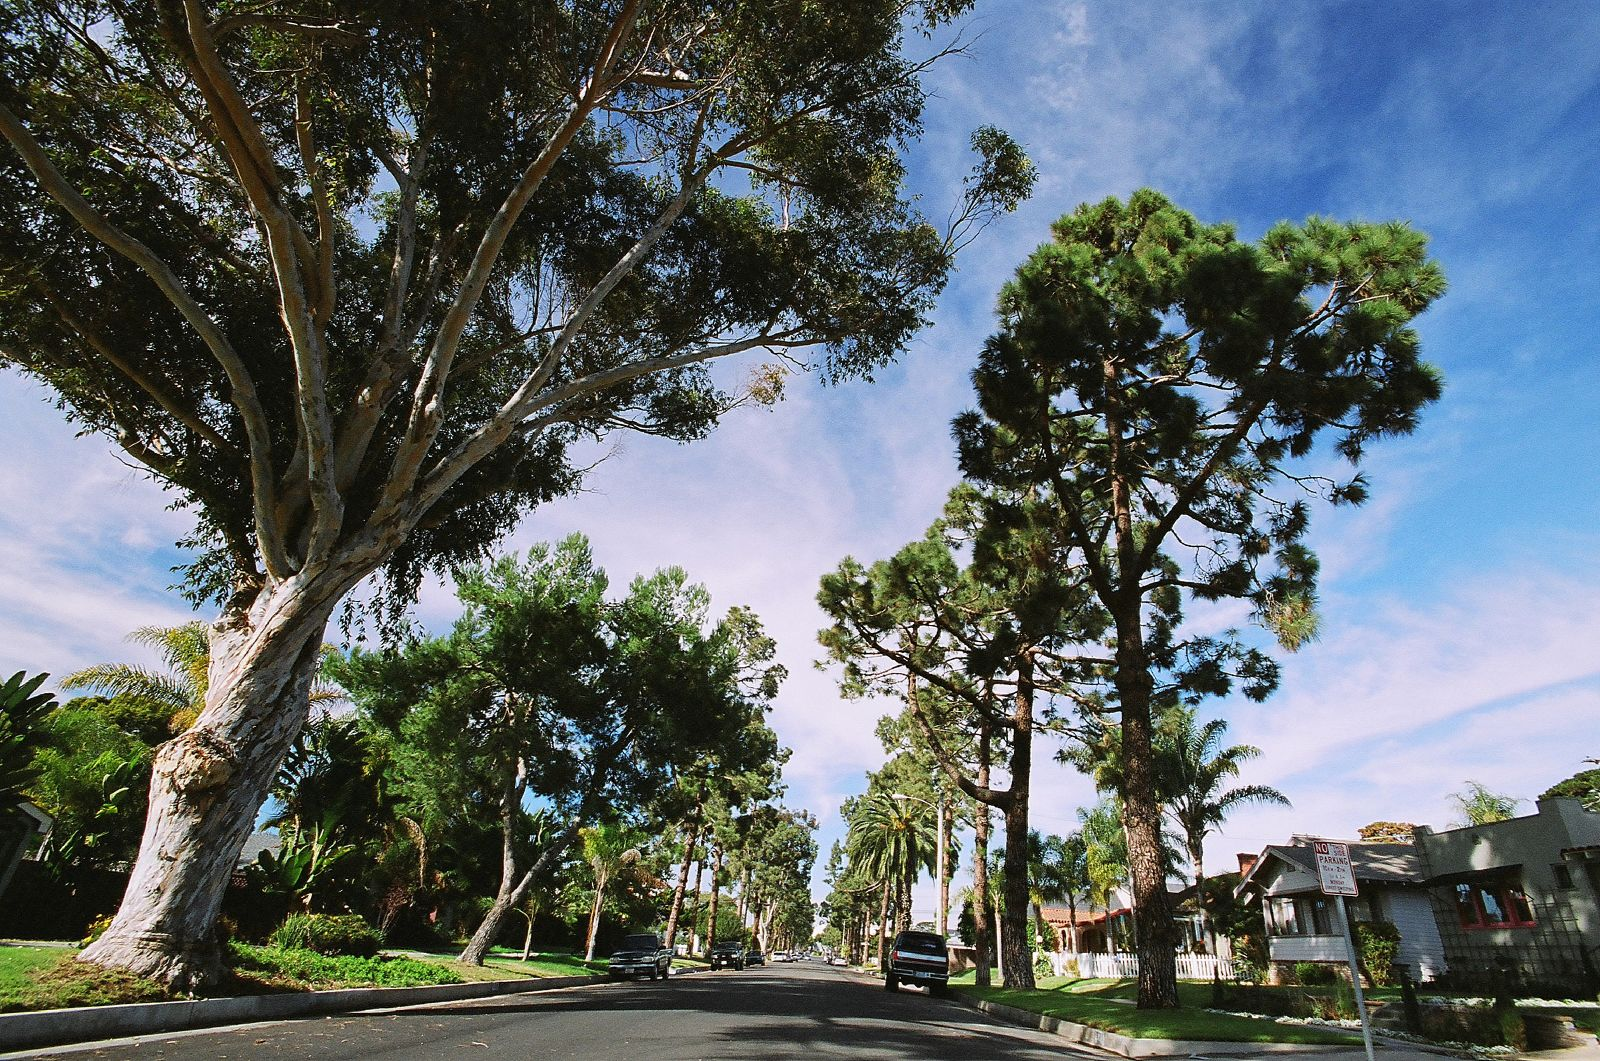 Sustainability Demystified: The Value of Trees